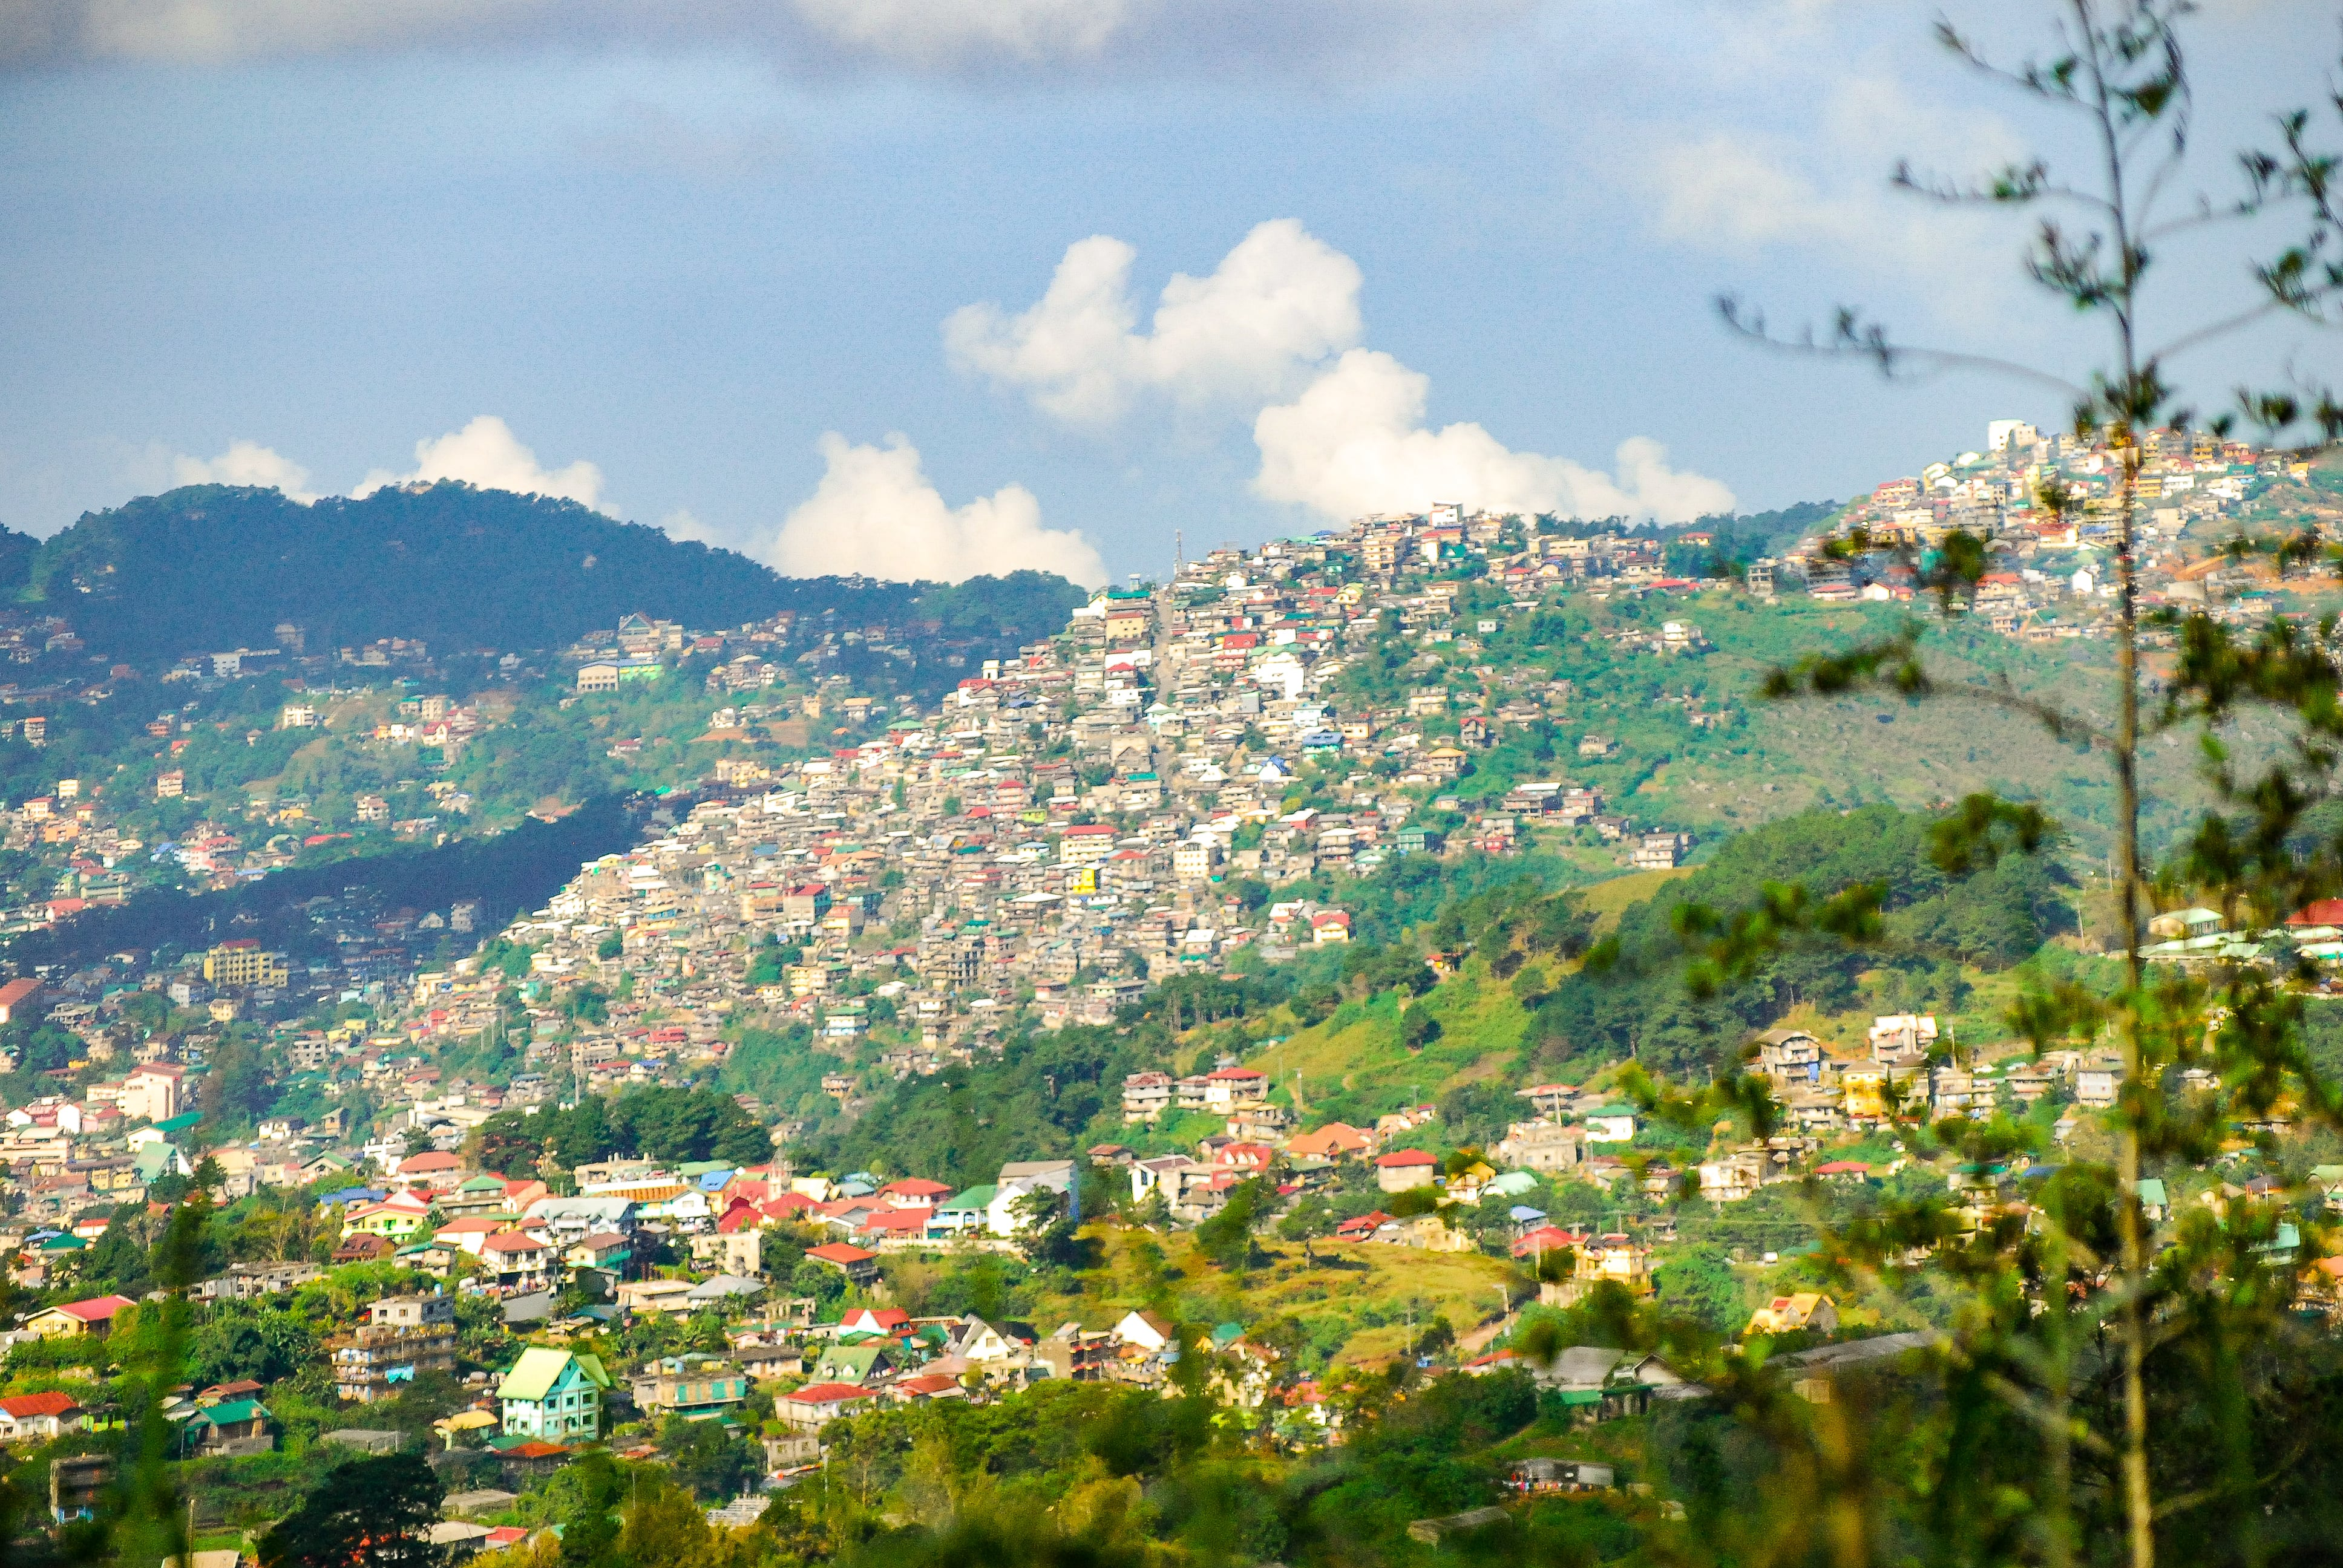 View from Mines View Park in Baguio City